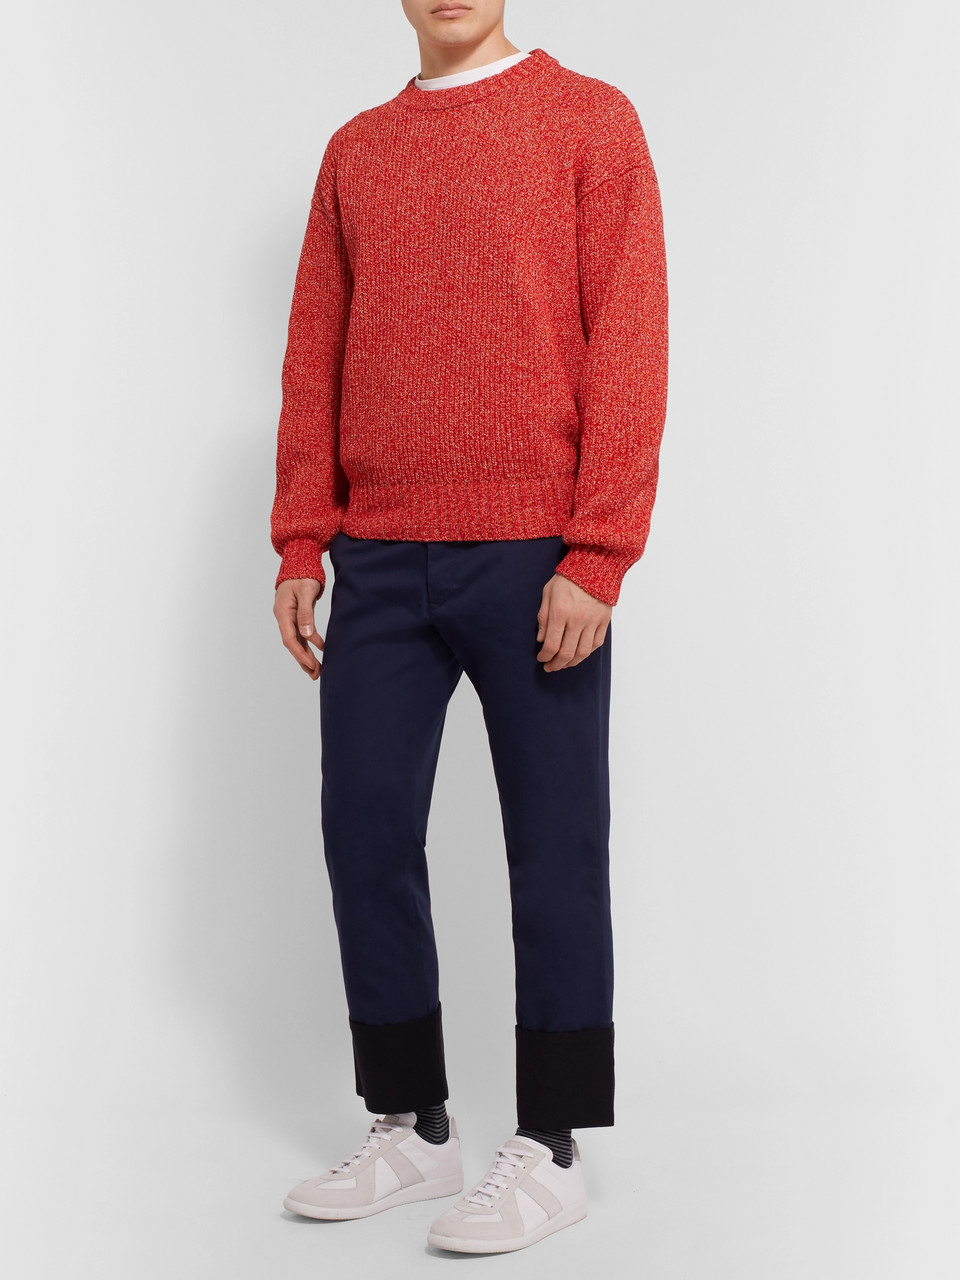 eye/LOEWE/nature Mélange Cotton-Blend Sweater